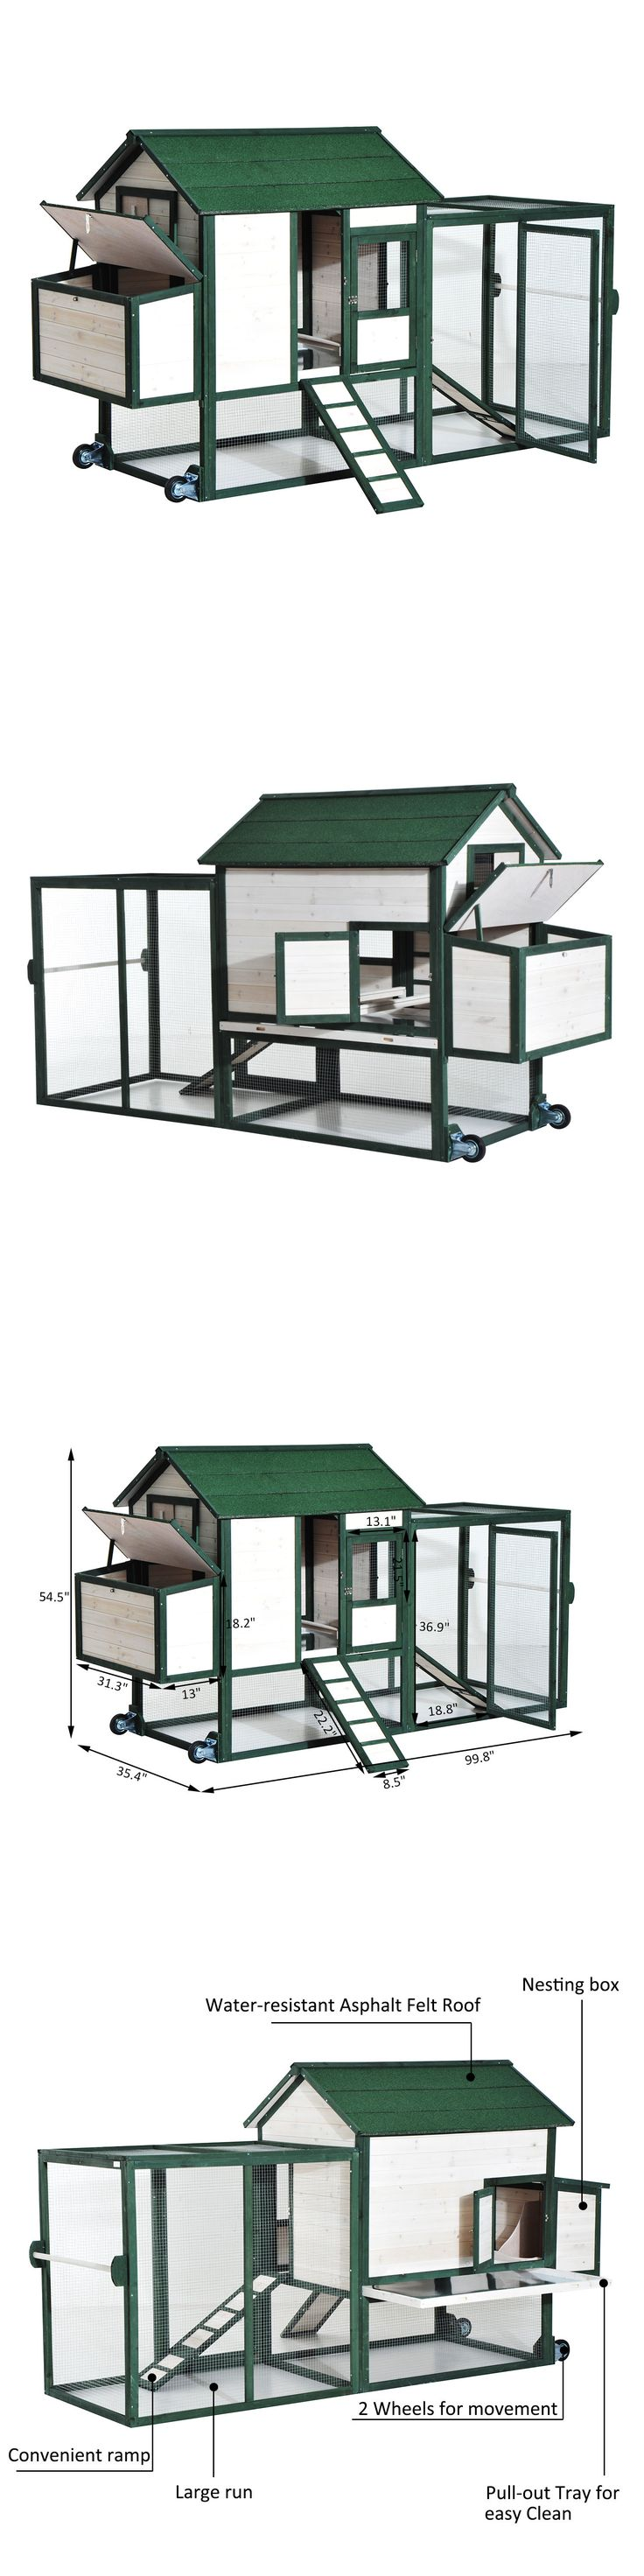 Backyard Poultry Supplies 177801: 100 Large Wooden Chicken Coop Hen House Pet Poultry Cage Nest Box W Wheels -> BUY IT NOW ONLY: $399.99 on eBay!